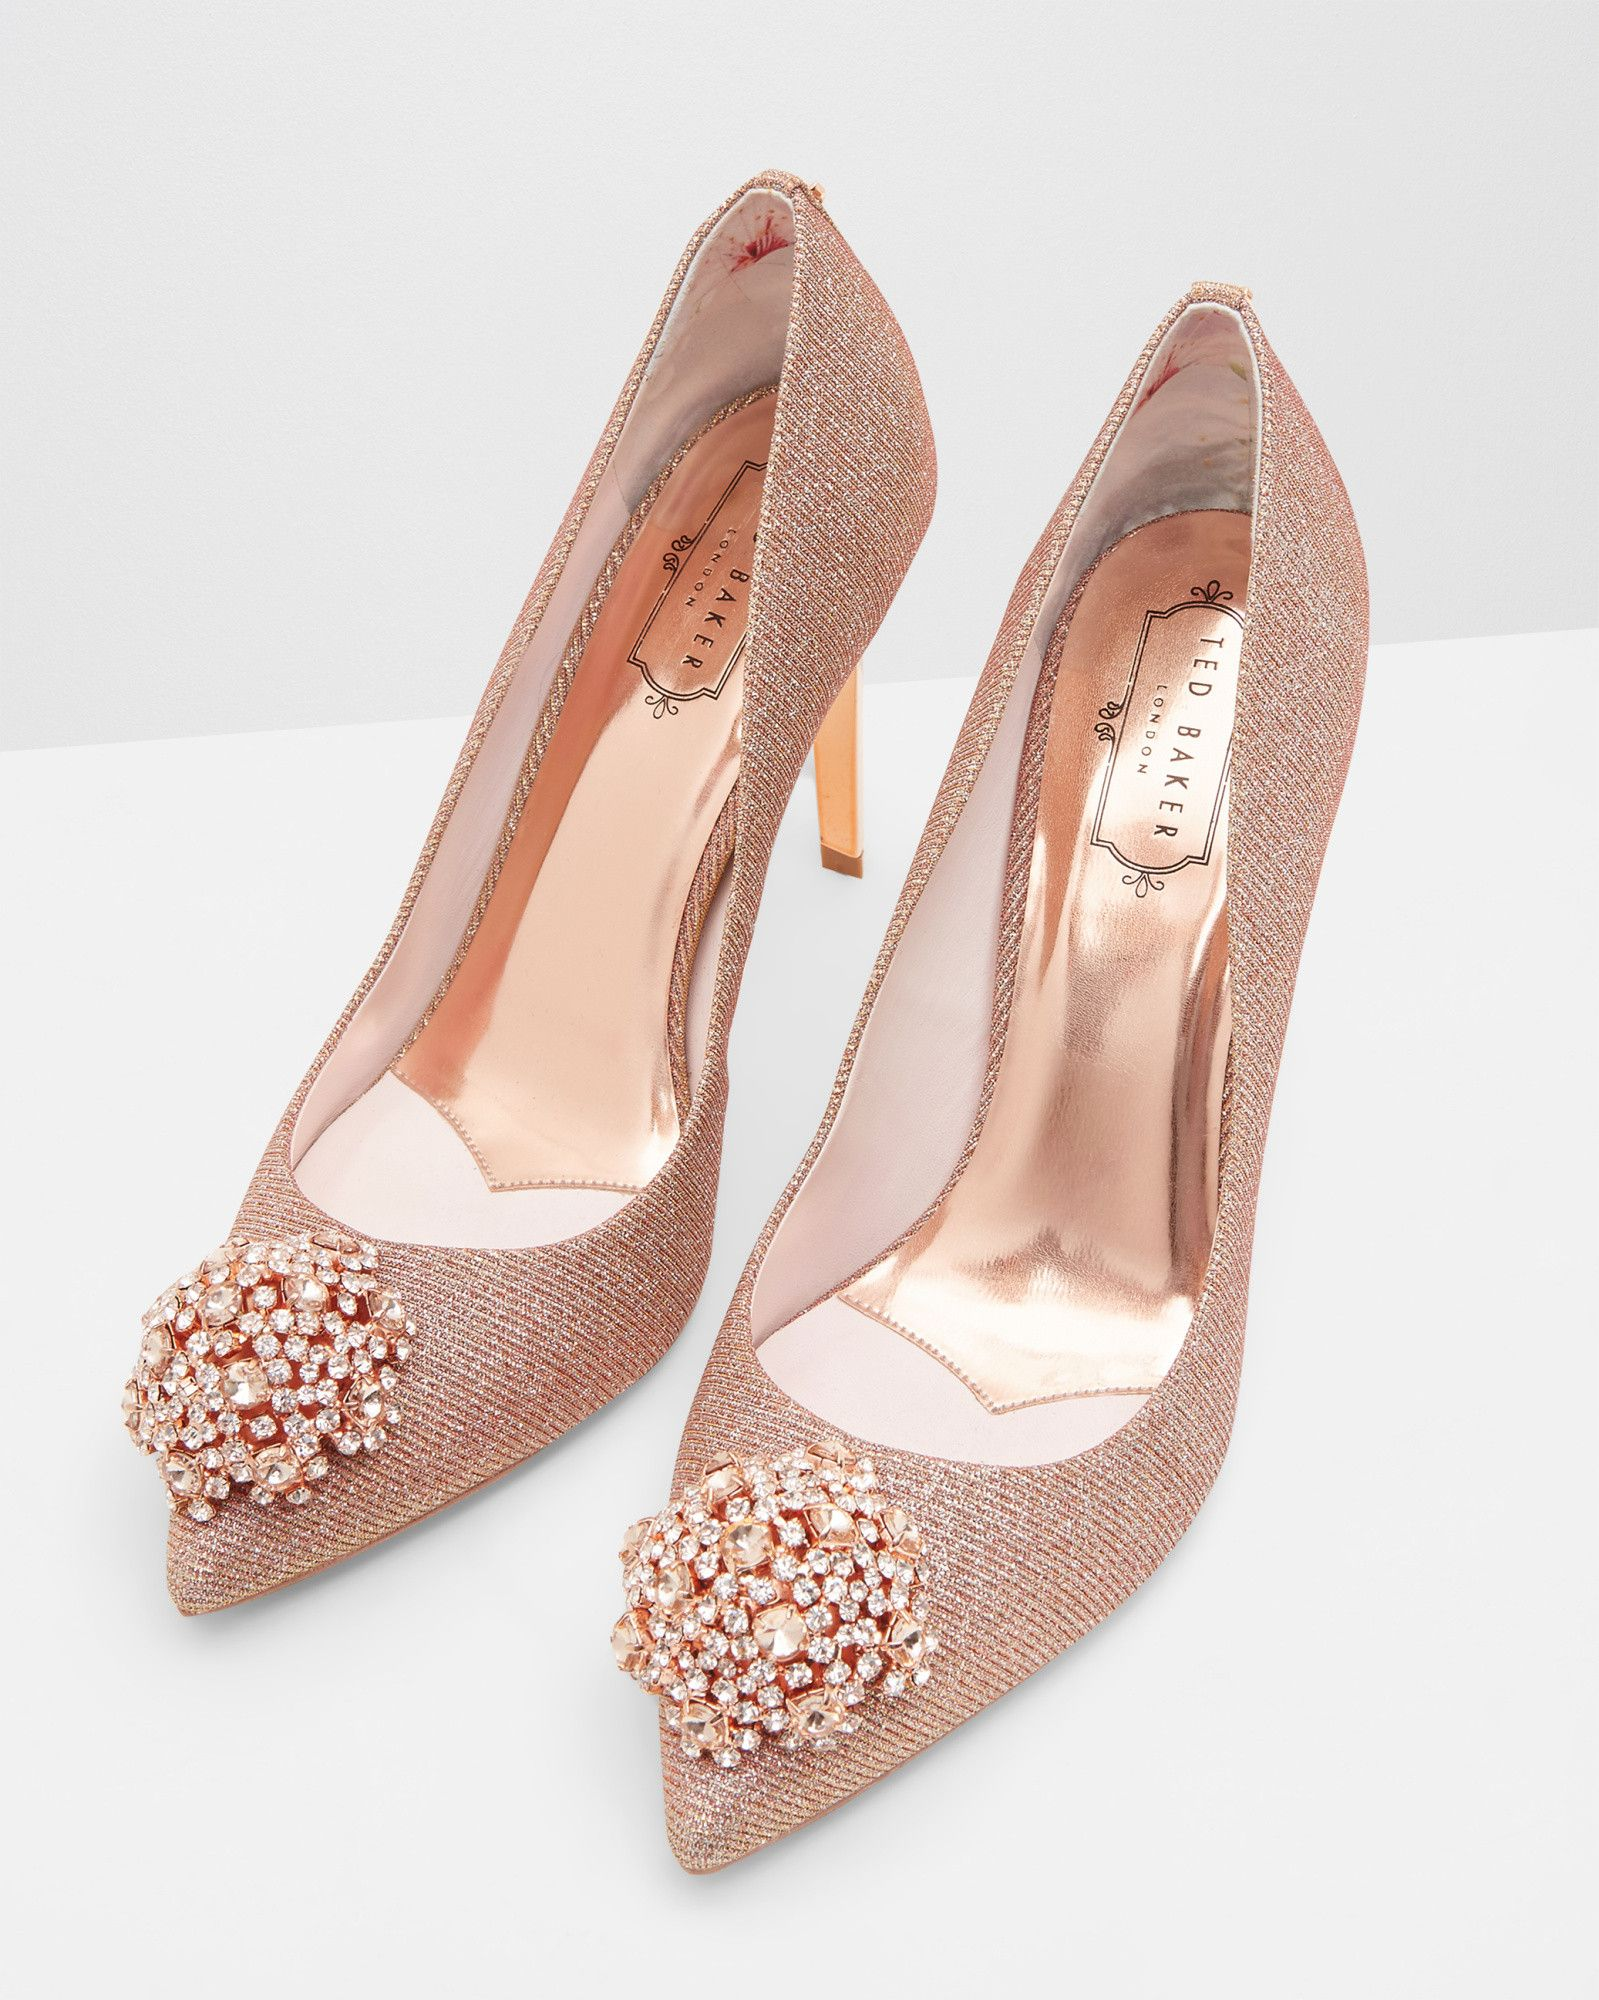 662c1063379f6 PEETCH brooch detail court shoe in Rose Gold by Ted Baker. Beautiful ❤   WedWithTed  tedbaker